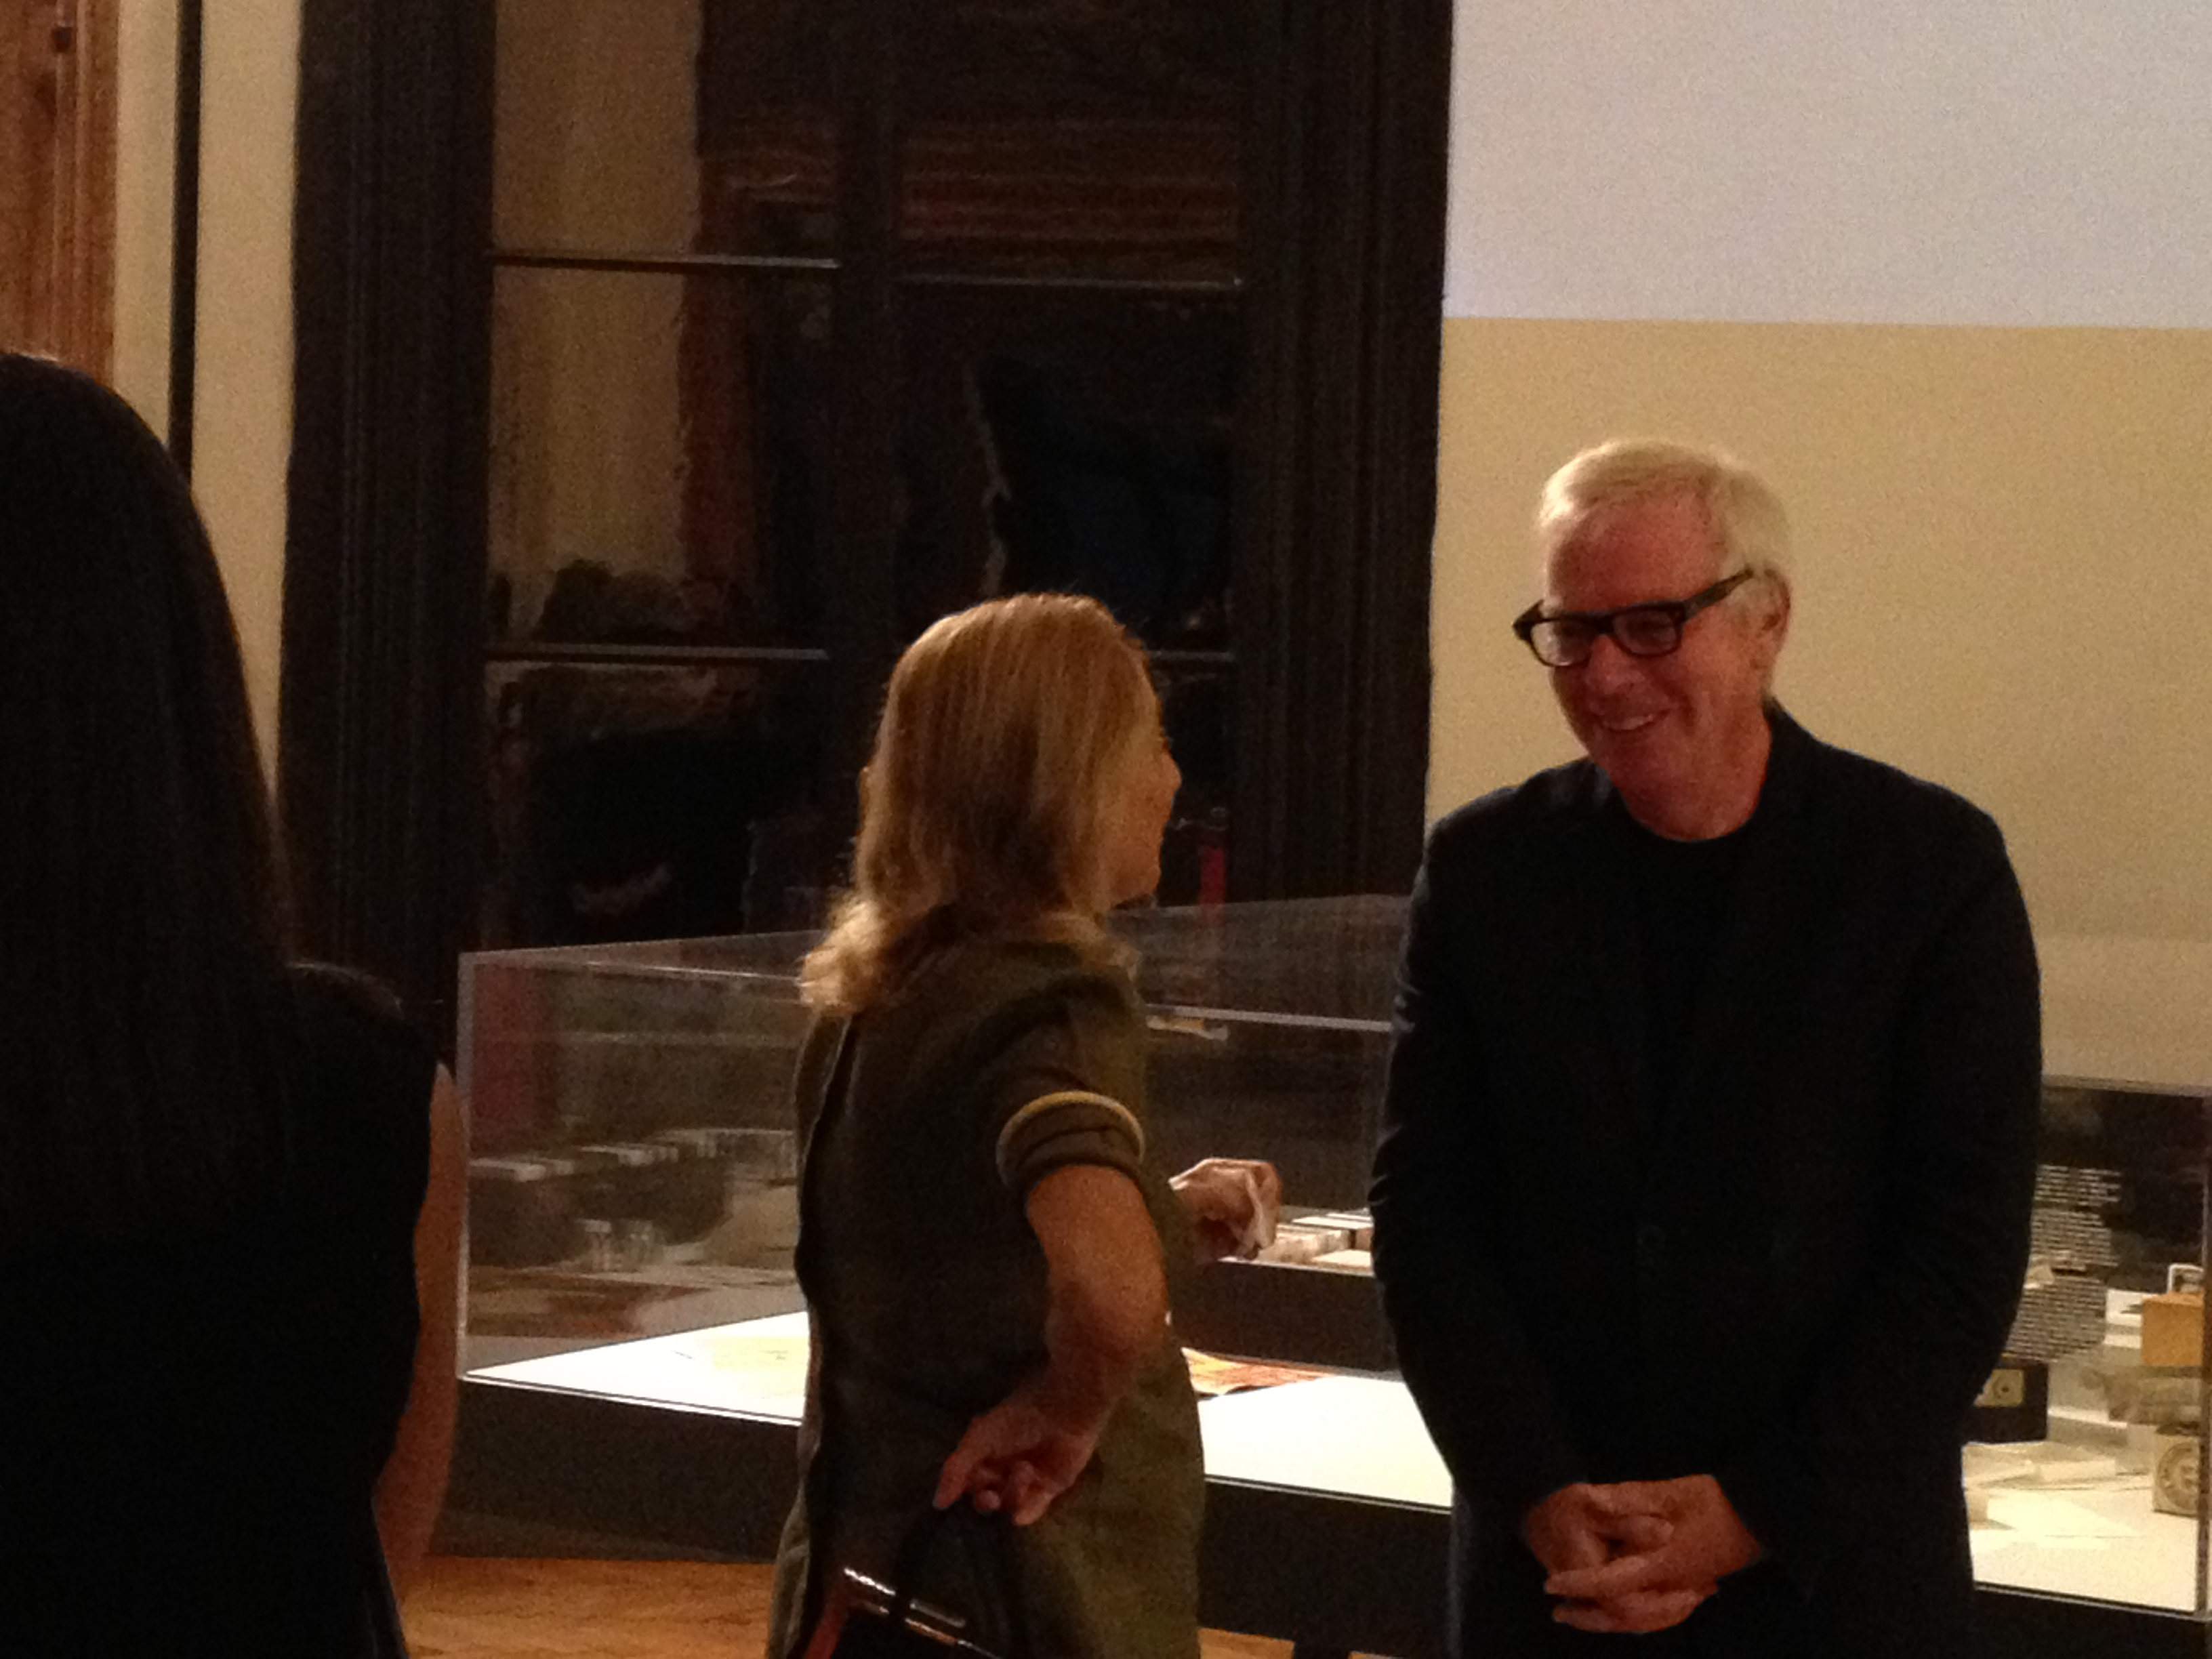 David Chipperfield e Miuccia Prada